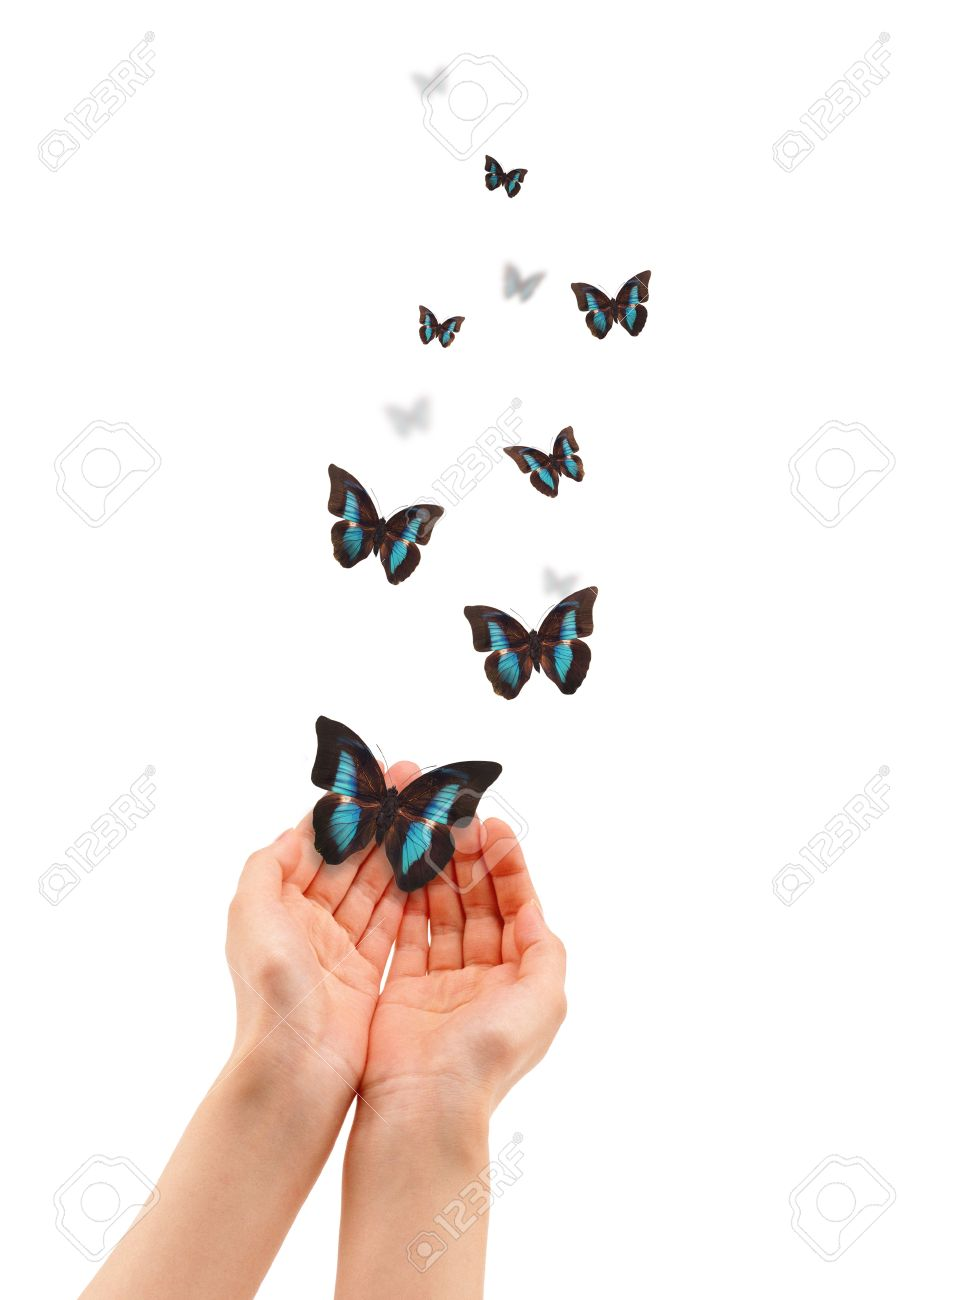 Hands holding a butterfly isolated on white background. Stock Photo - 11934652